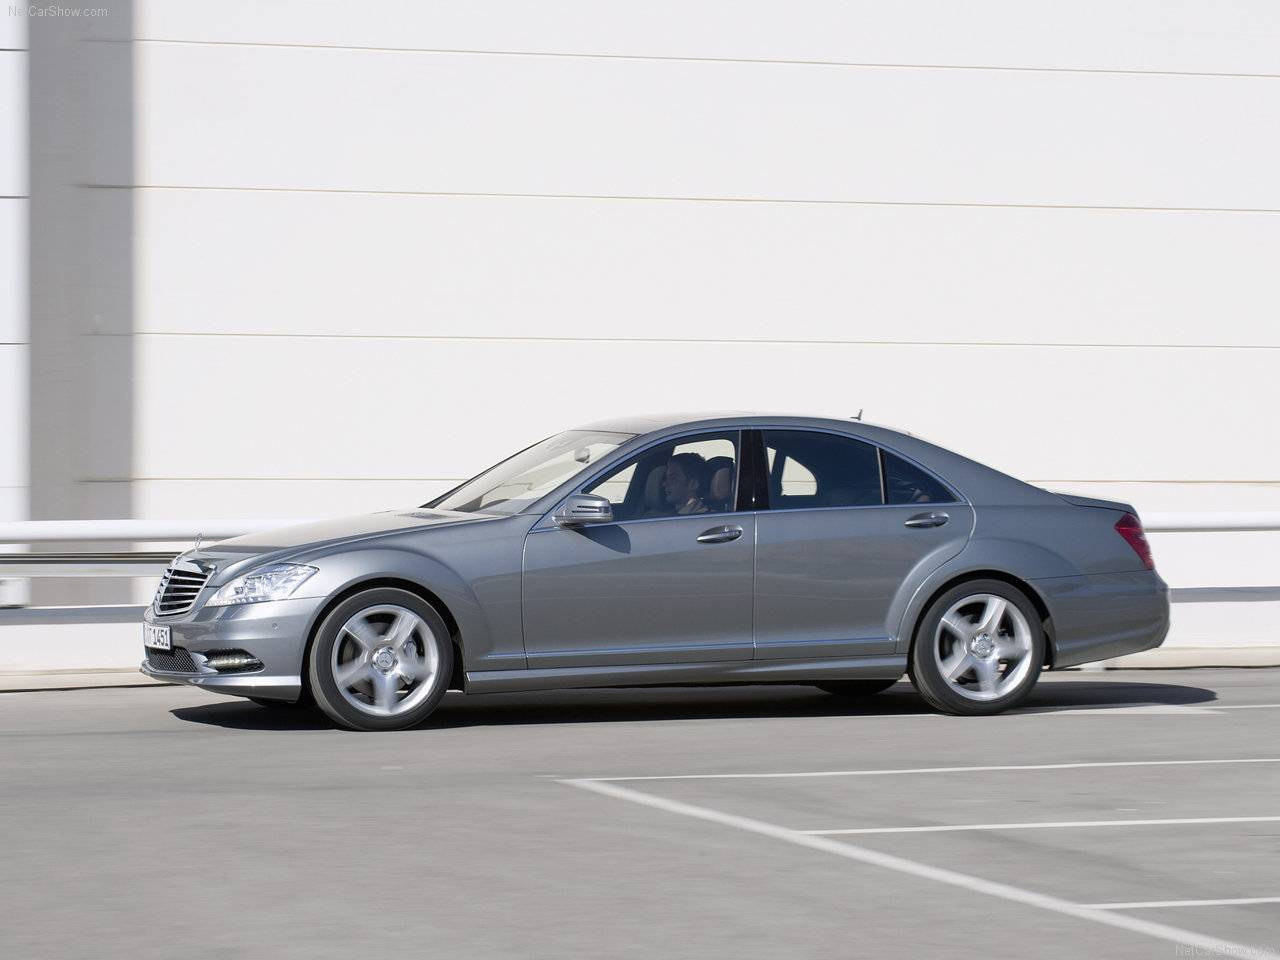 2010 mercedes benz s class amg sports package for Mercedes benz s class amg 2010